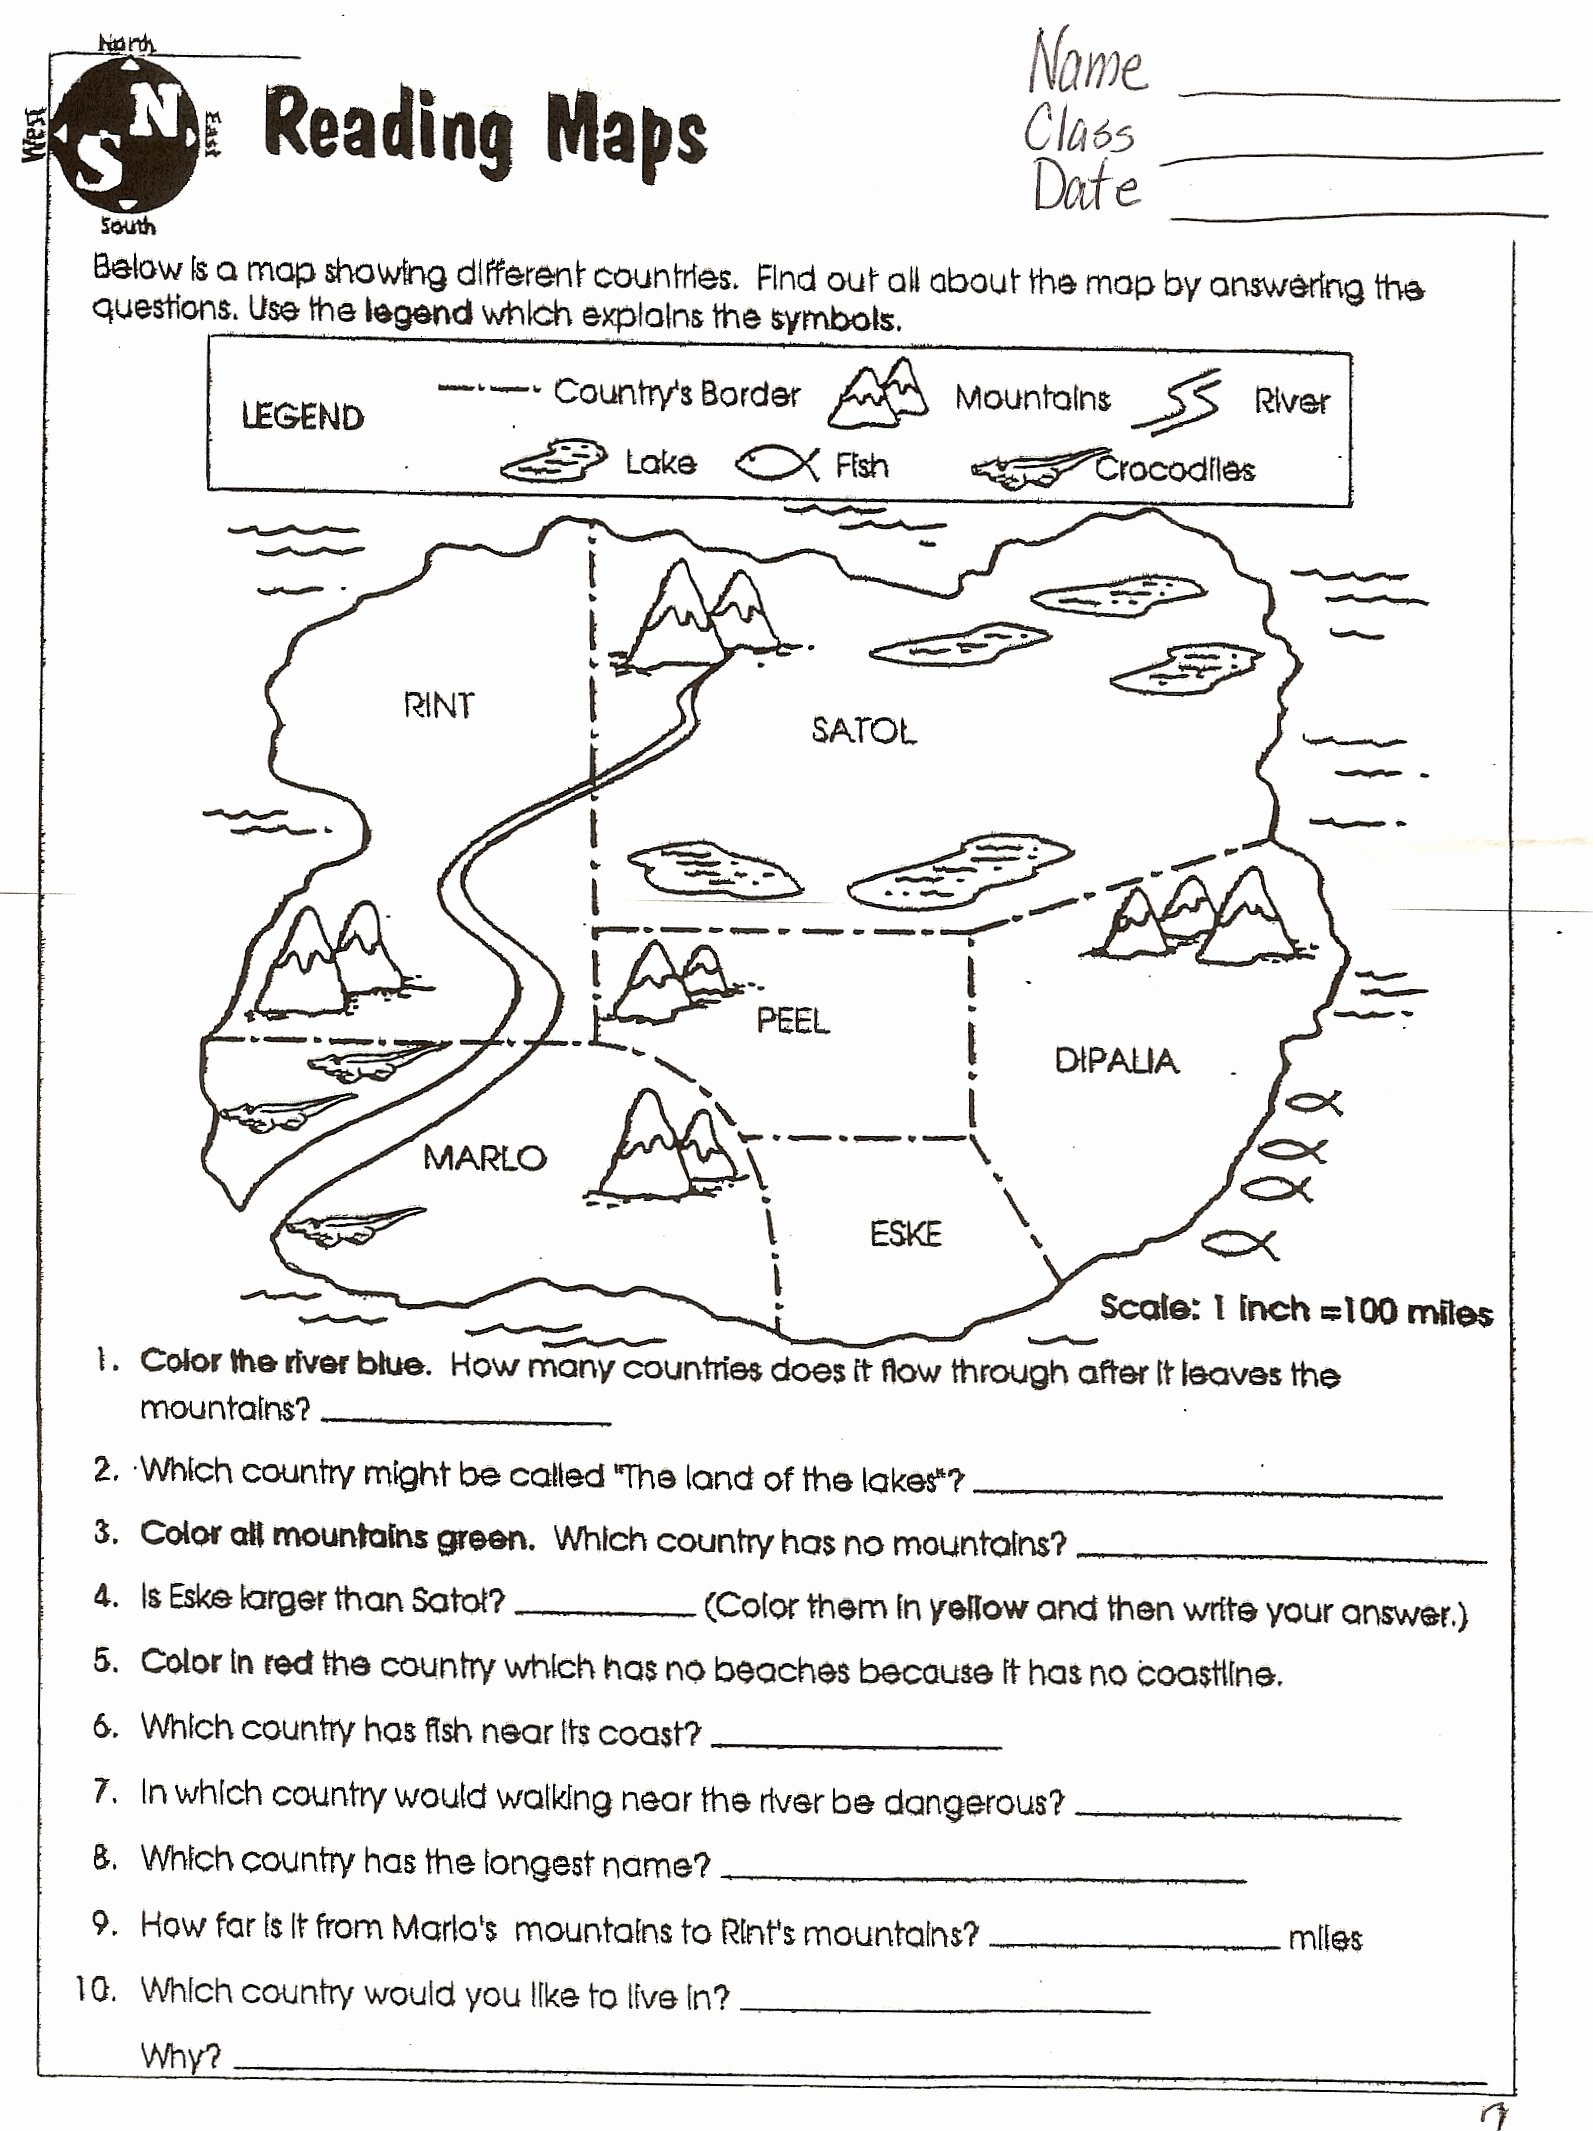 Physical and Political Maps Worksheets Best Of social Stu S Maps Worksheets